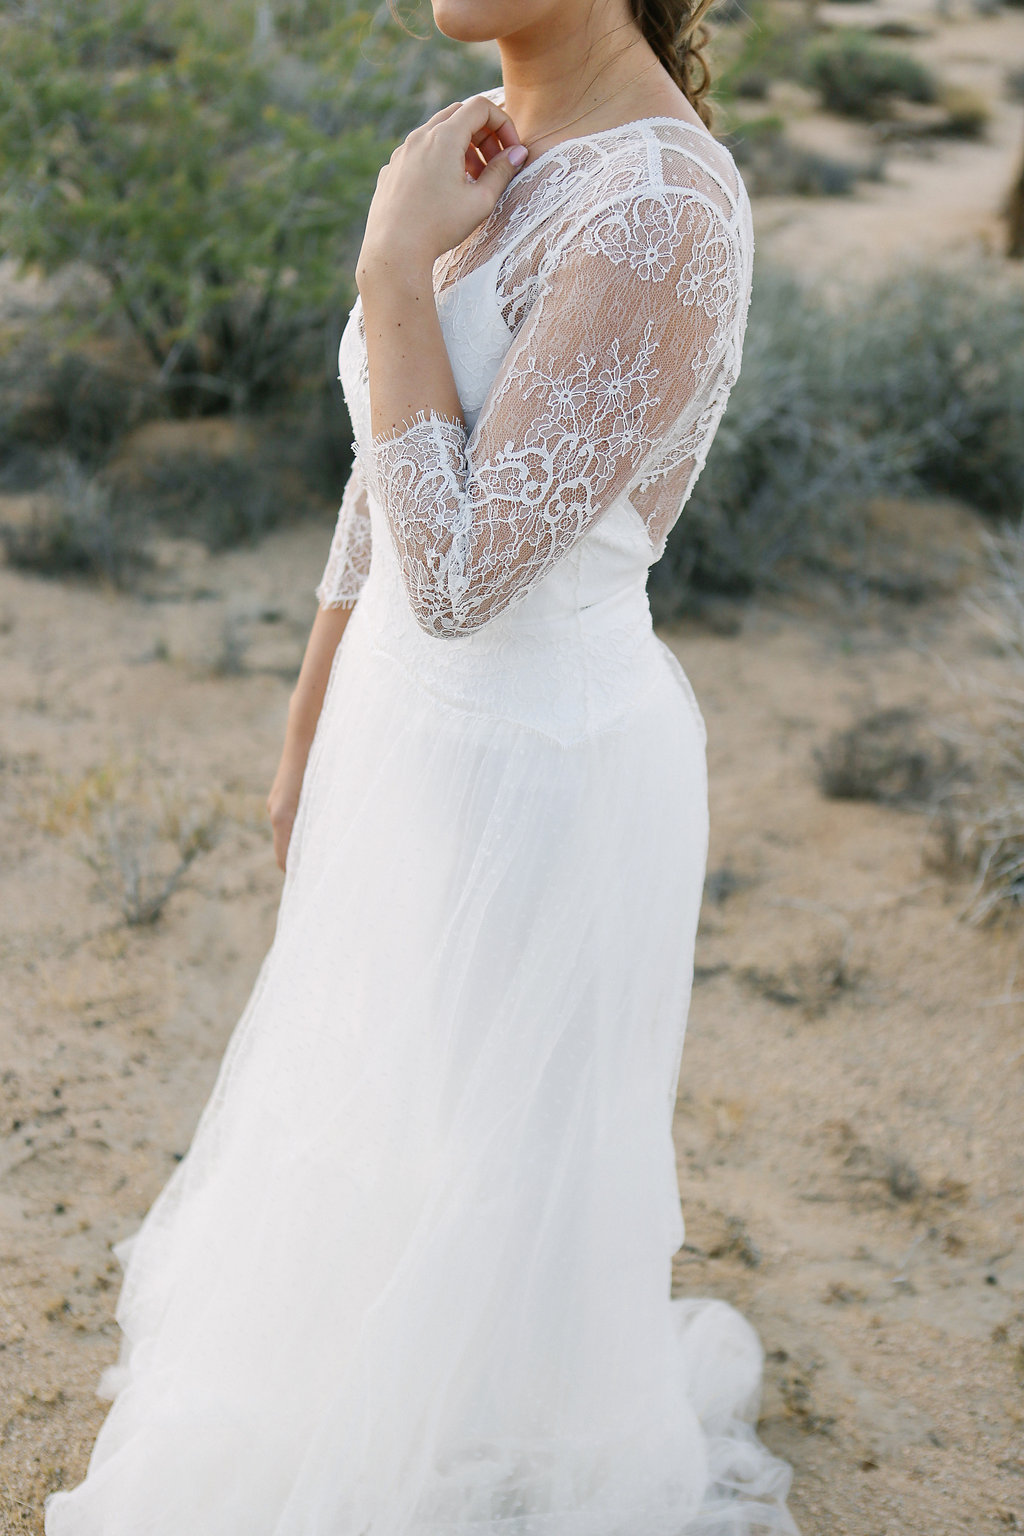 Boho Bridal Fashion Done Right